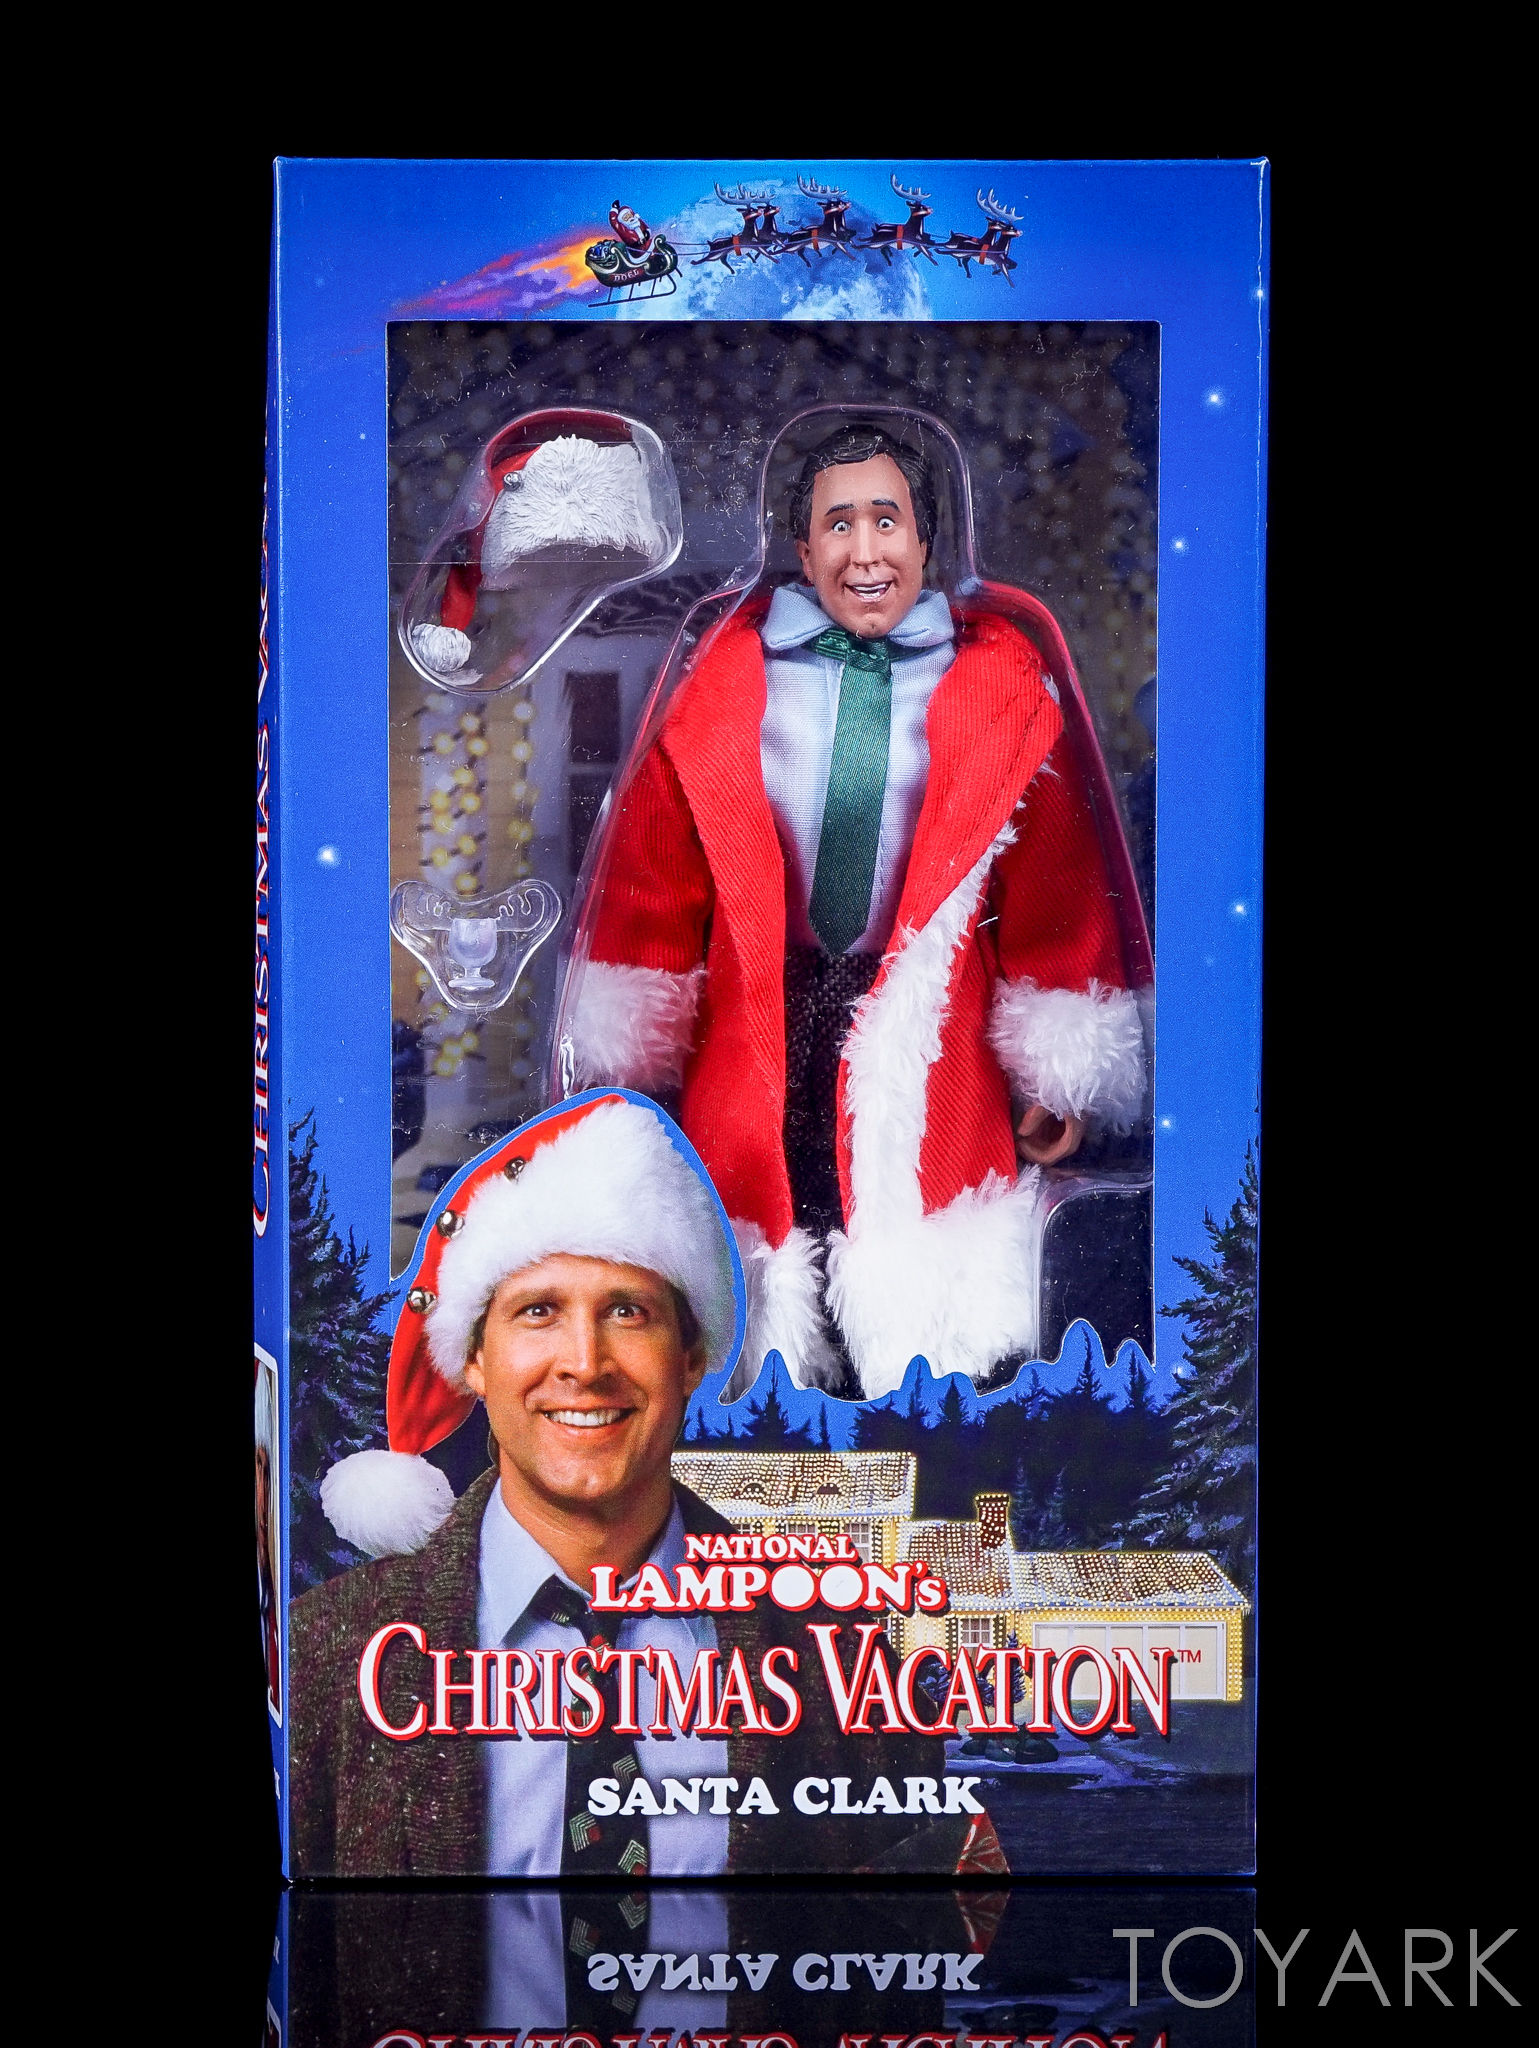 Christmas movie posters